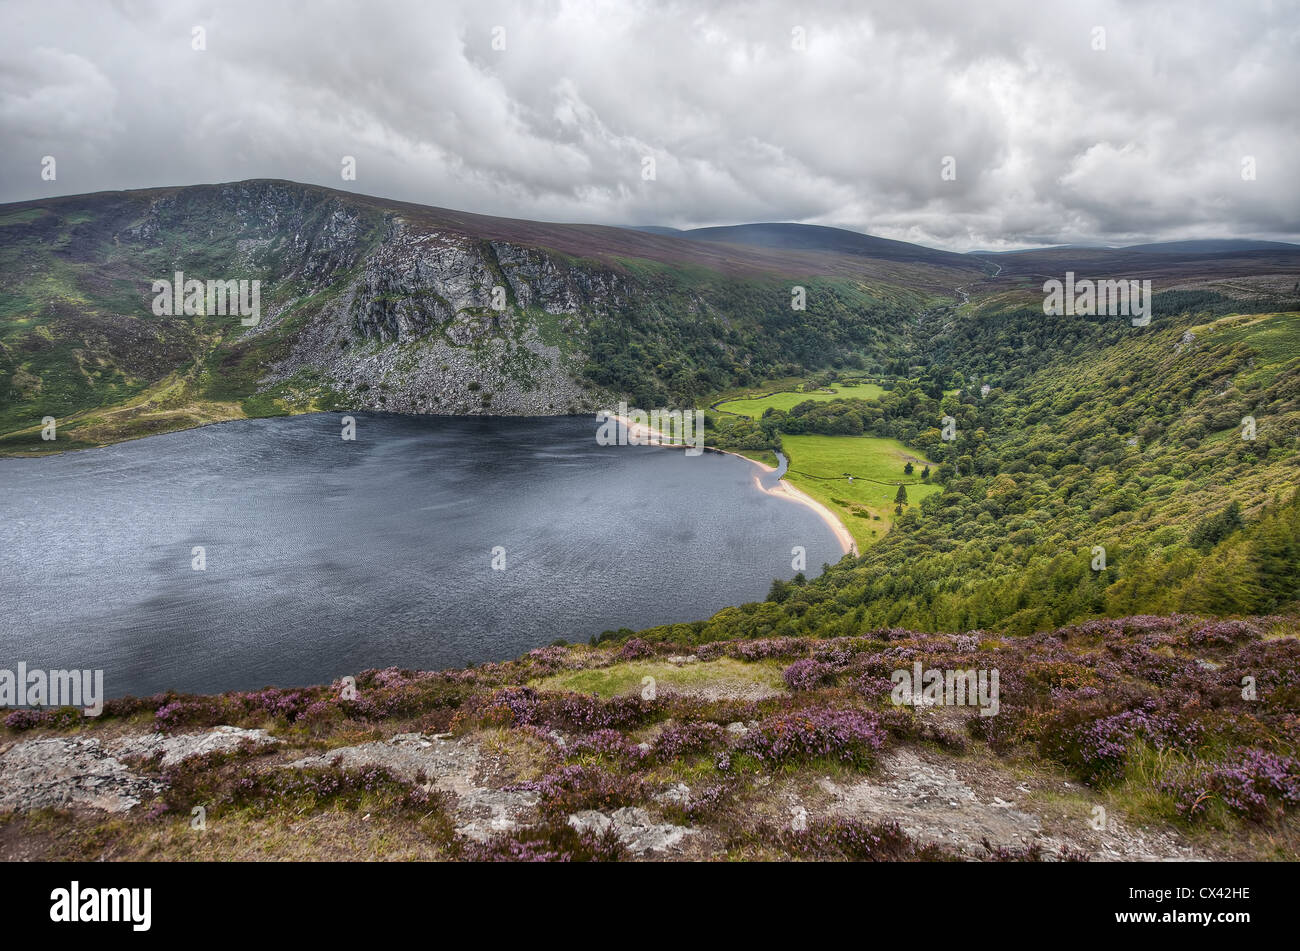 A cloudy day over the mystical Lough Tay in County Wicklow, Ireland - Stock Image